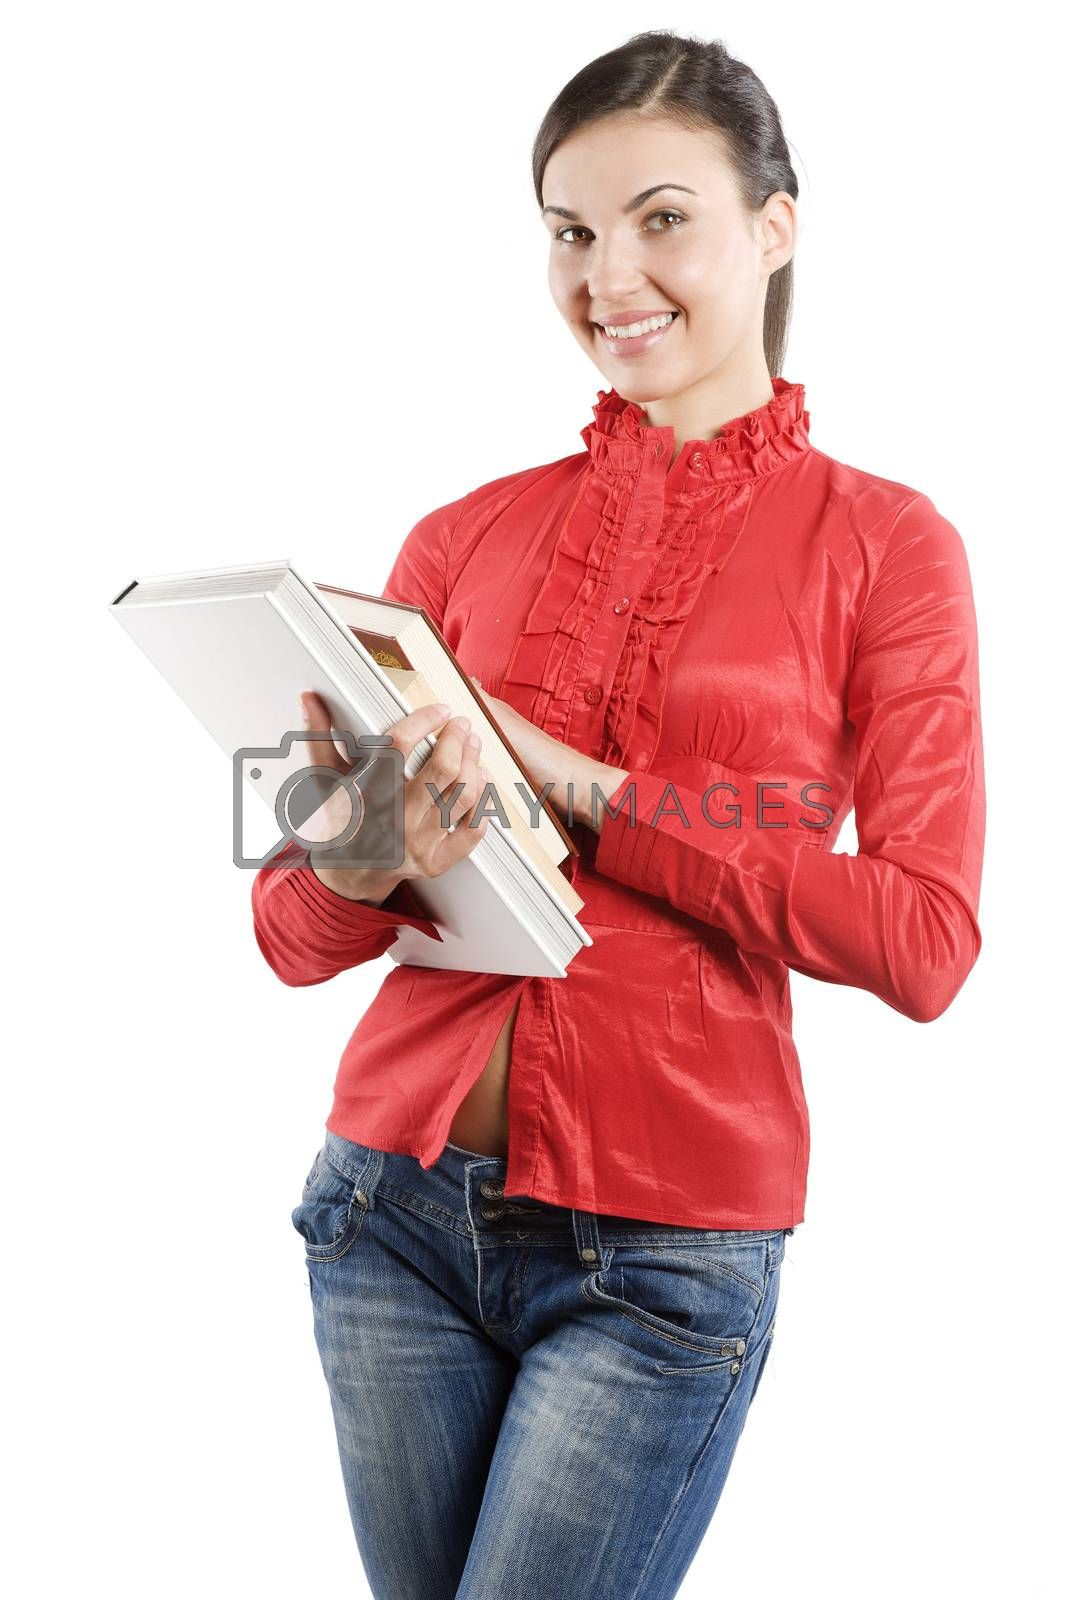 Royalty free image of the brunette student by fotoCD